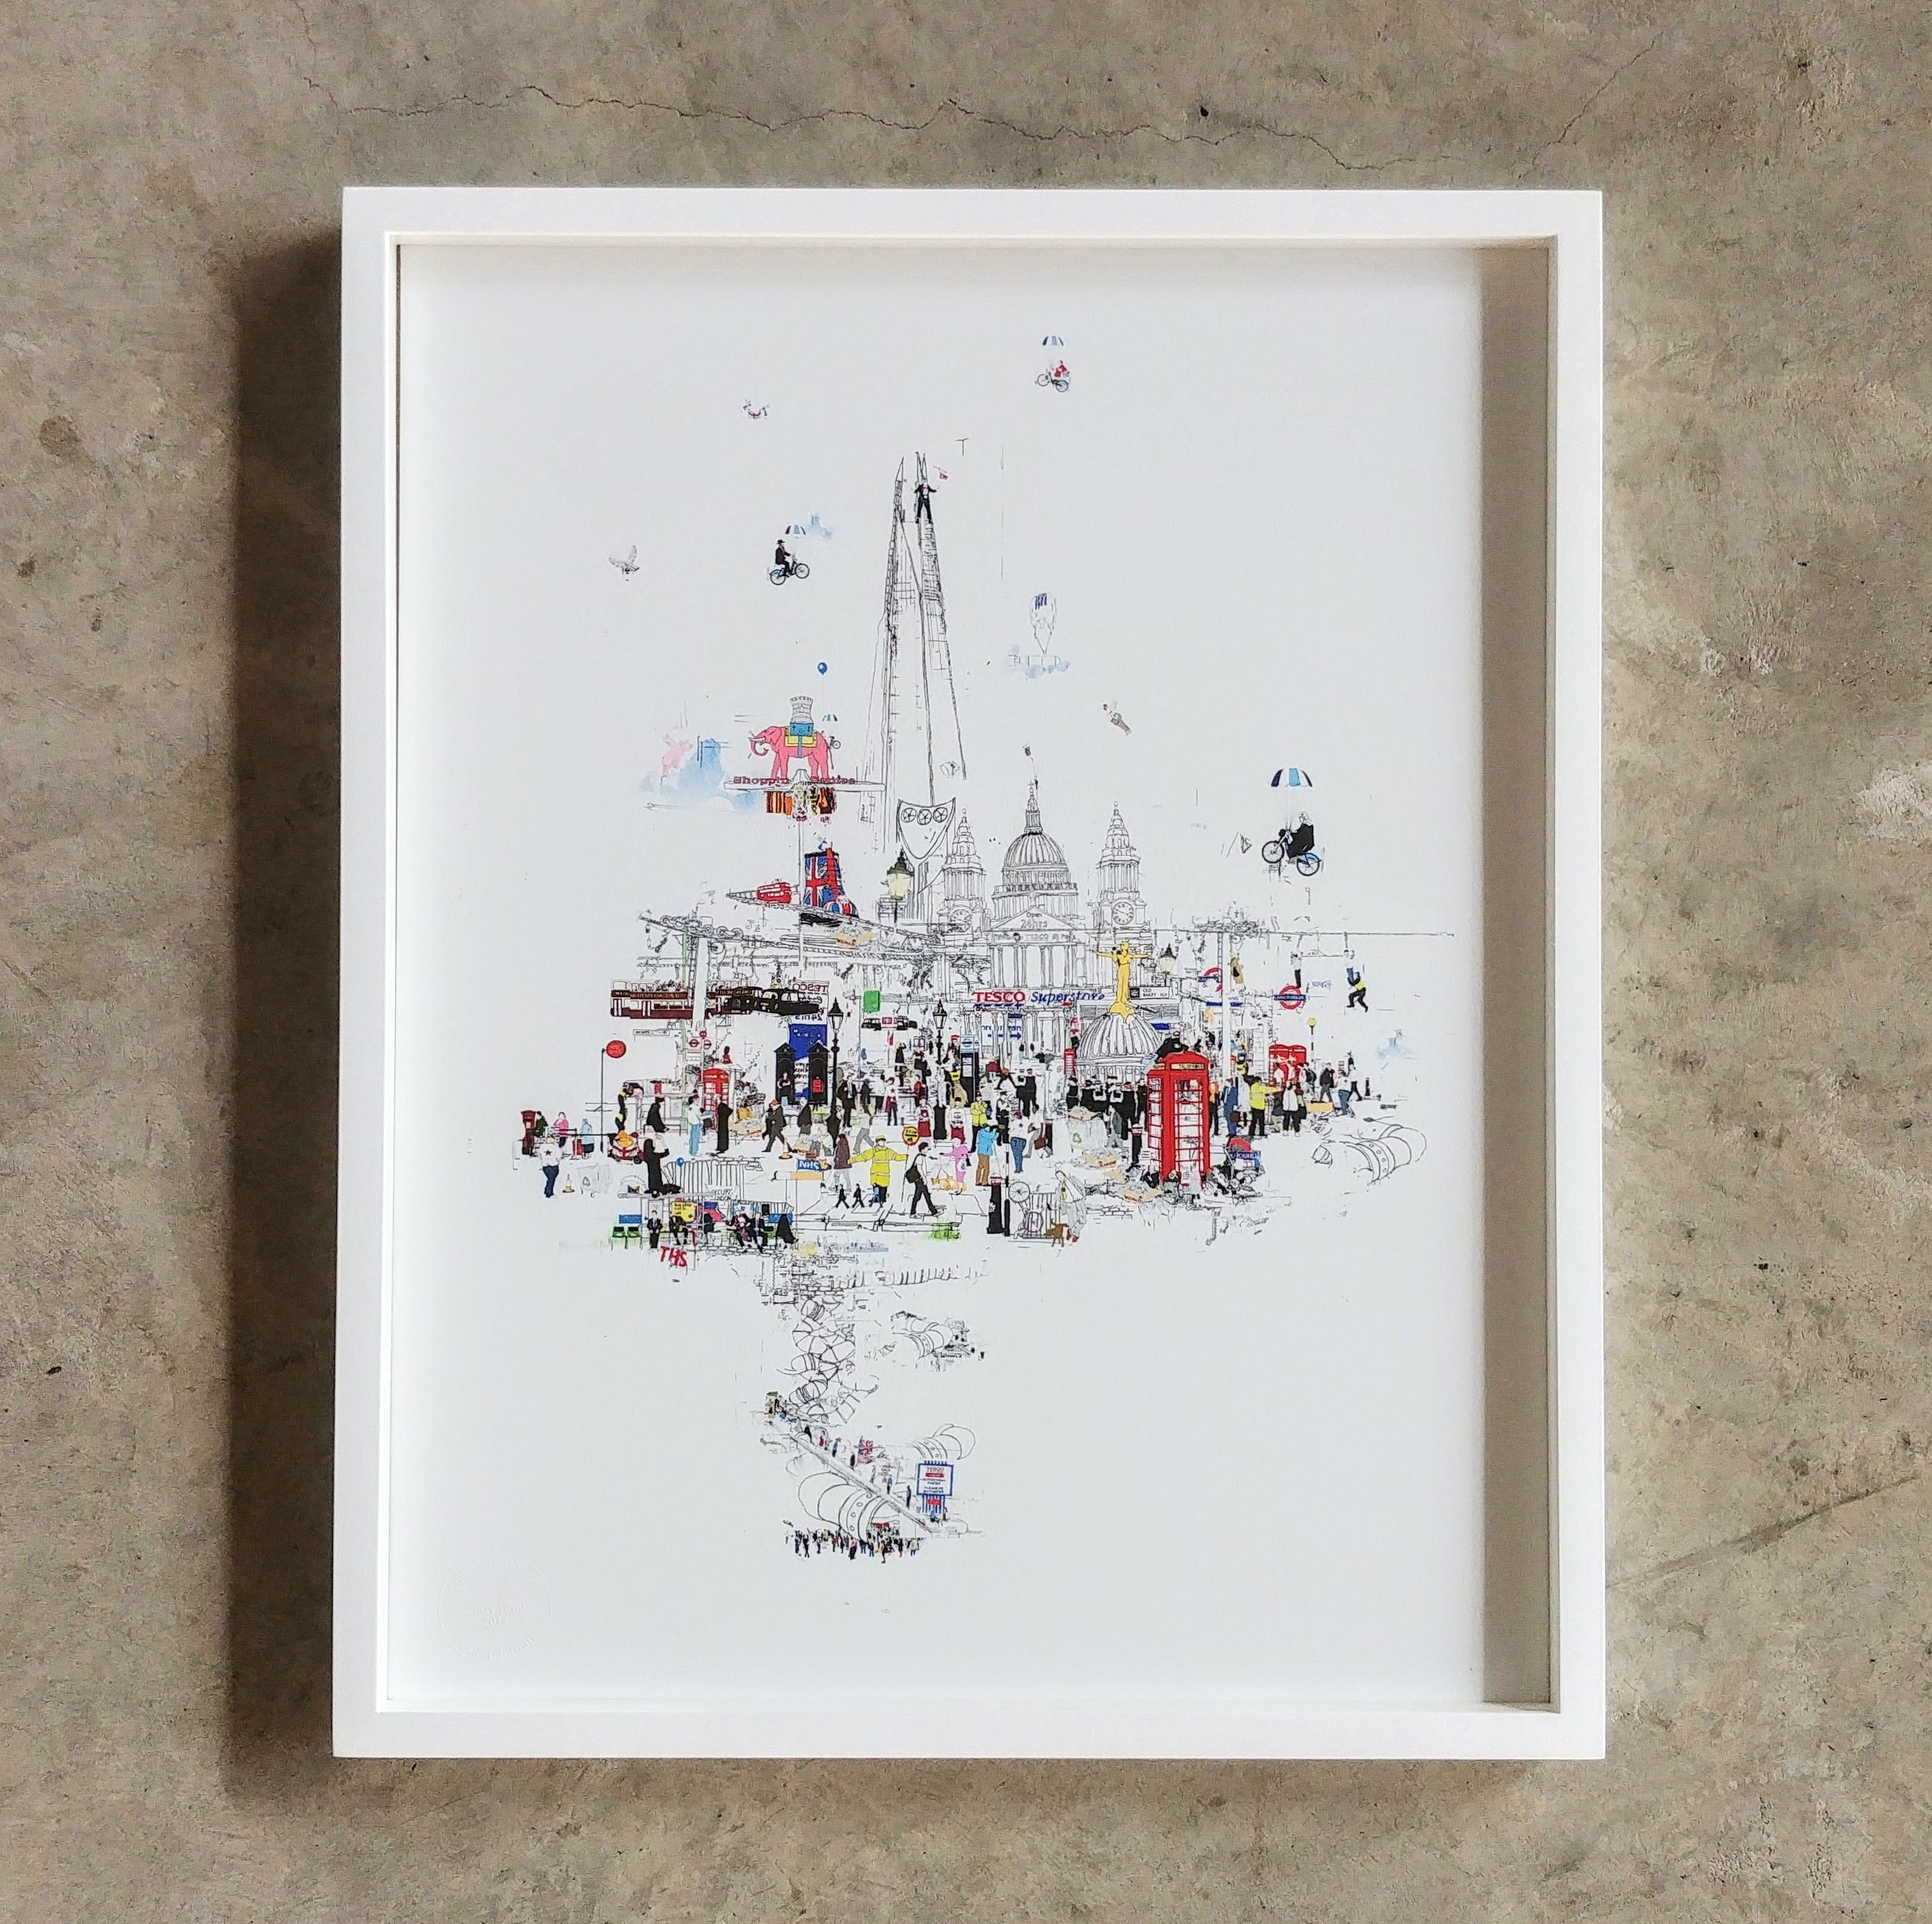 Laura Jordan Crazy Town (framed)